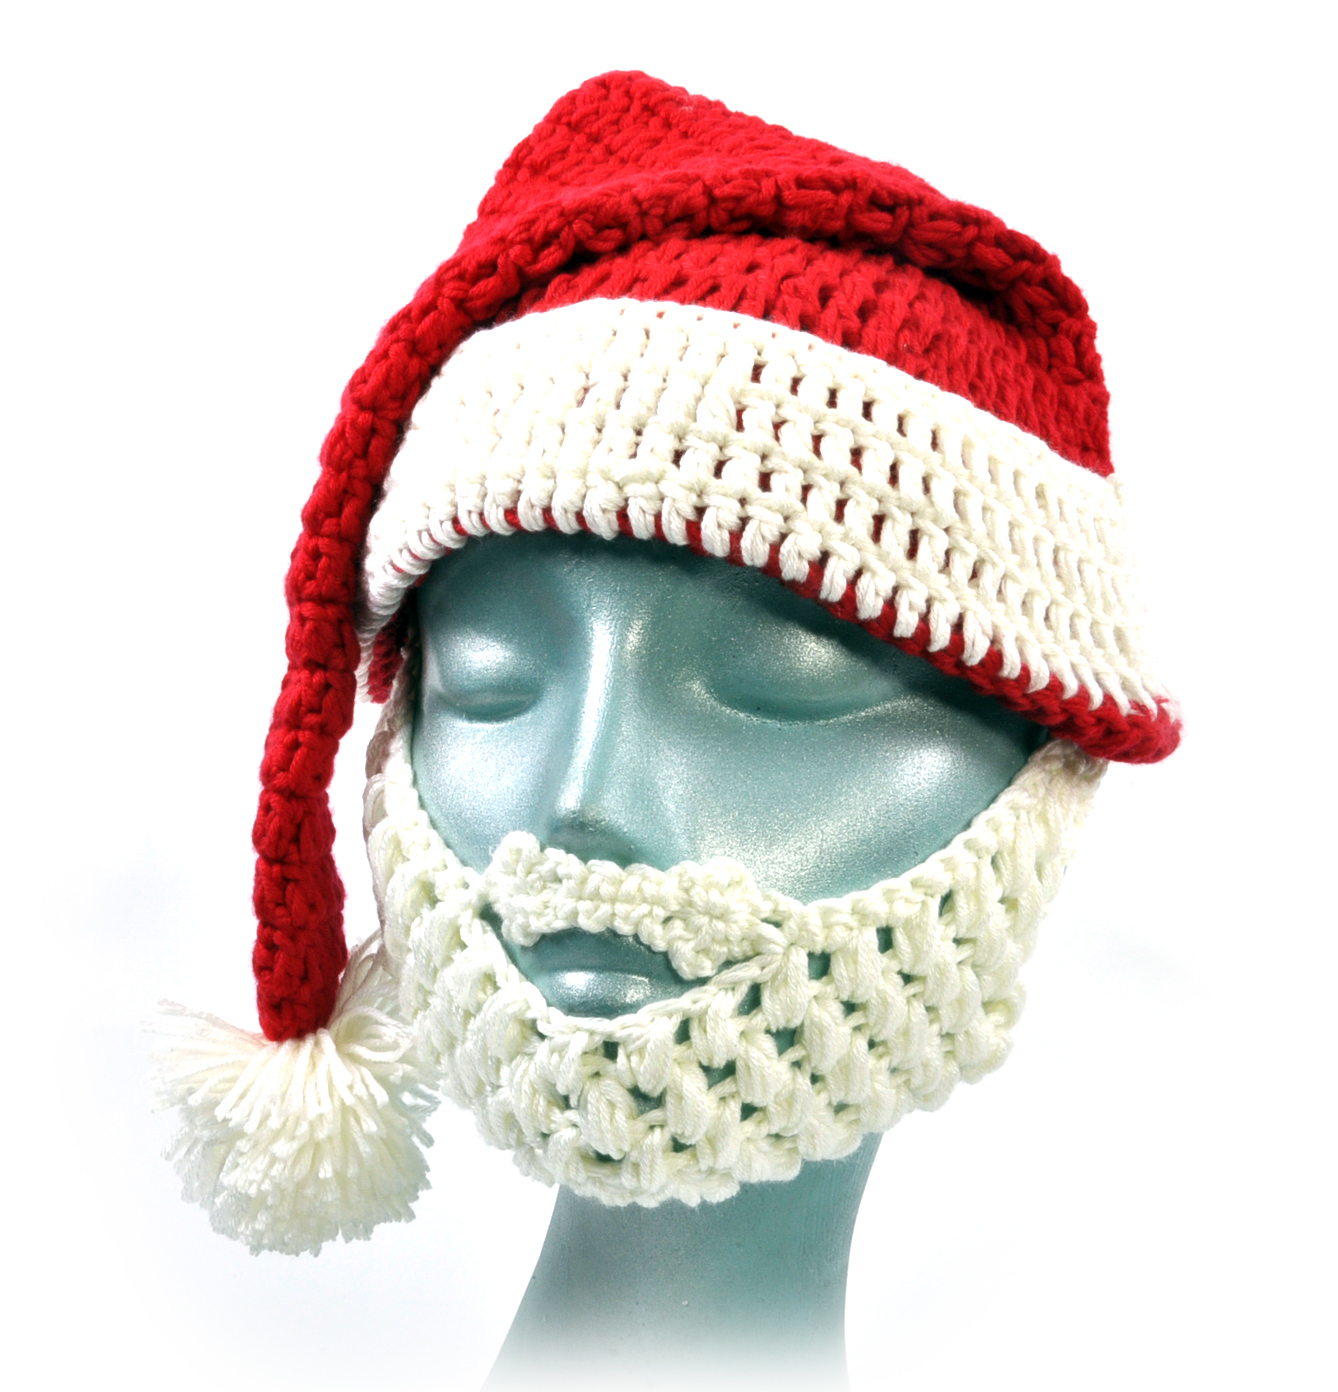 Knitted Santa Claus Hat with Detachable Beard | eBay